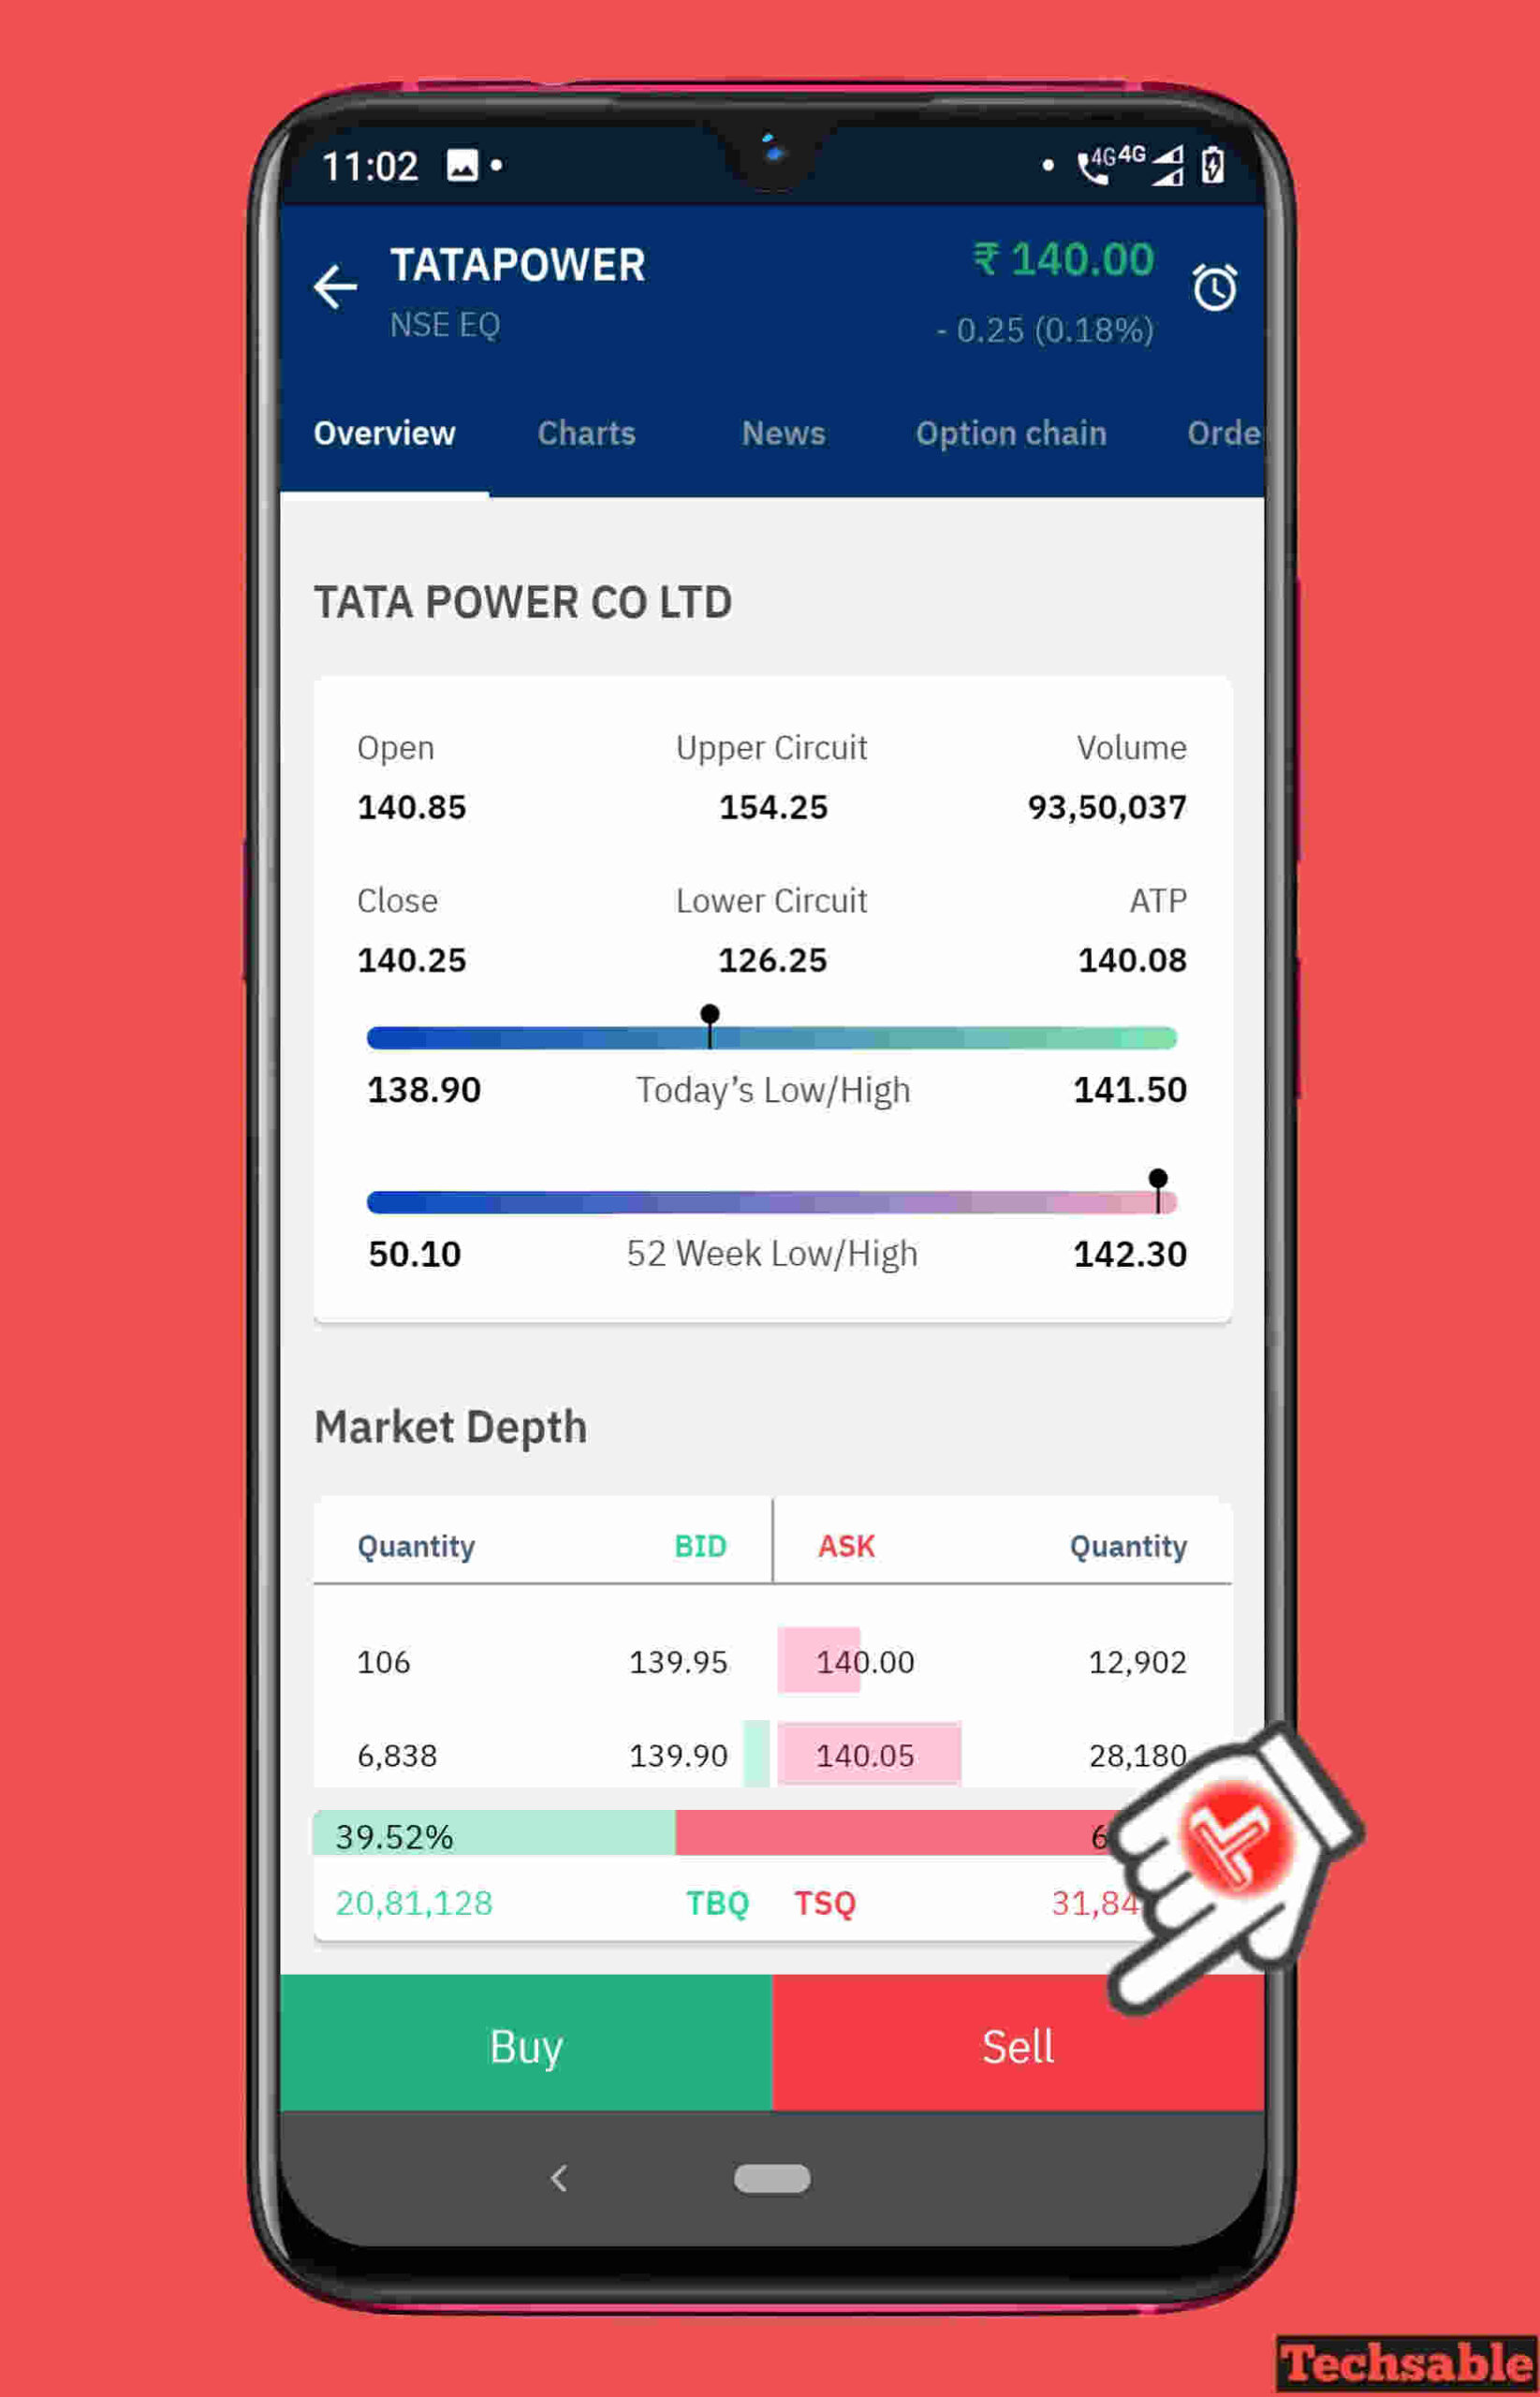 sell shares using mobile app